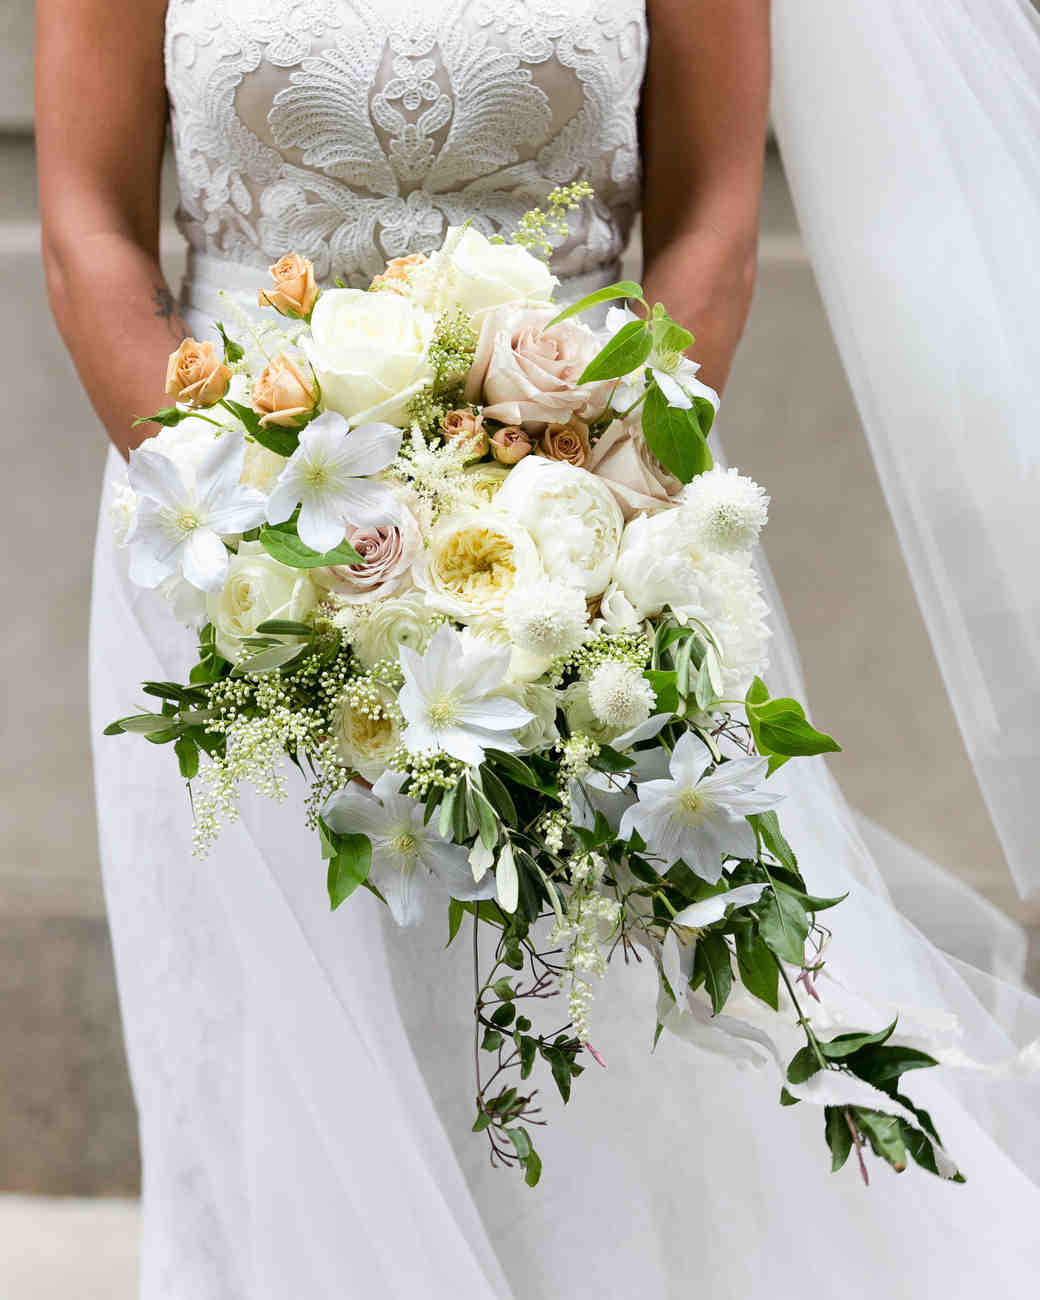 Flower Wedding Bouquet: 40 Chic Cascading Wedding Bouquets